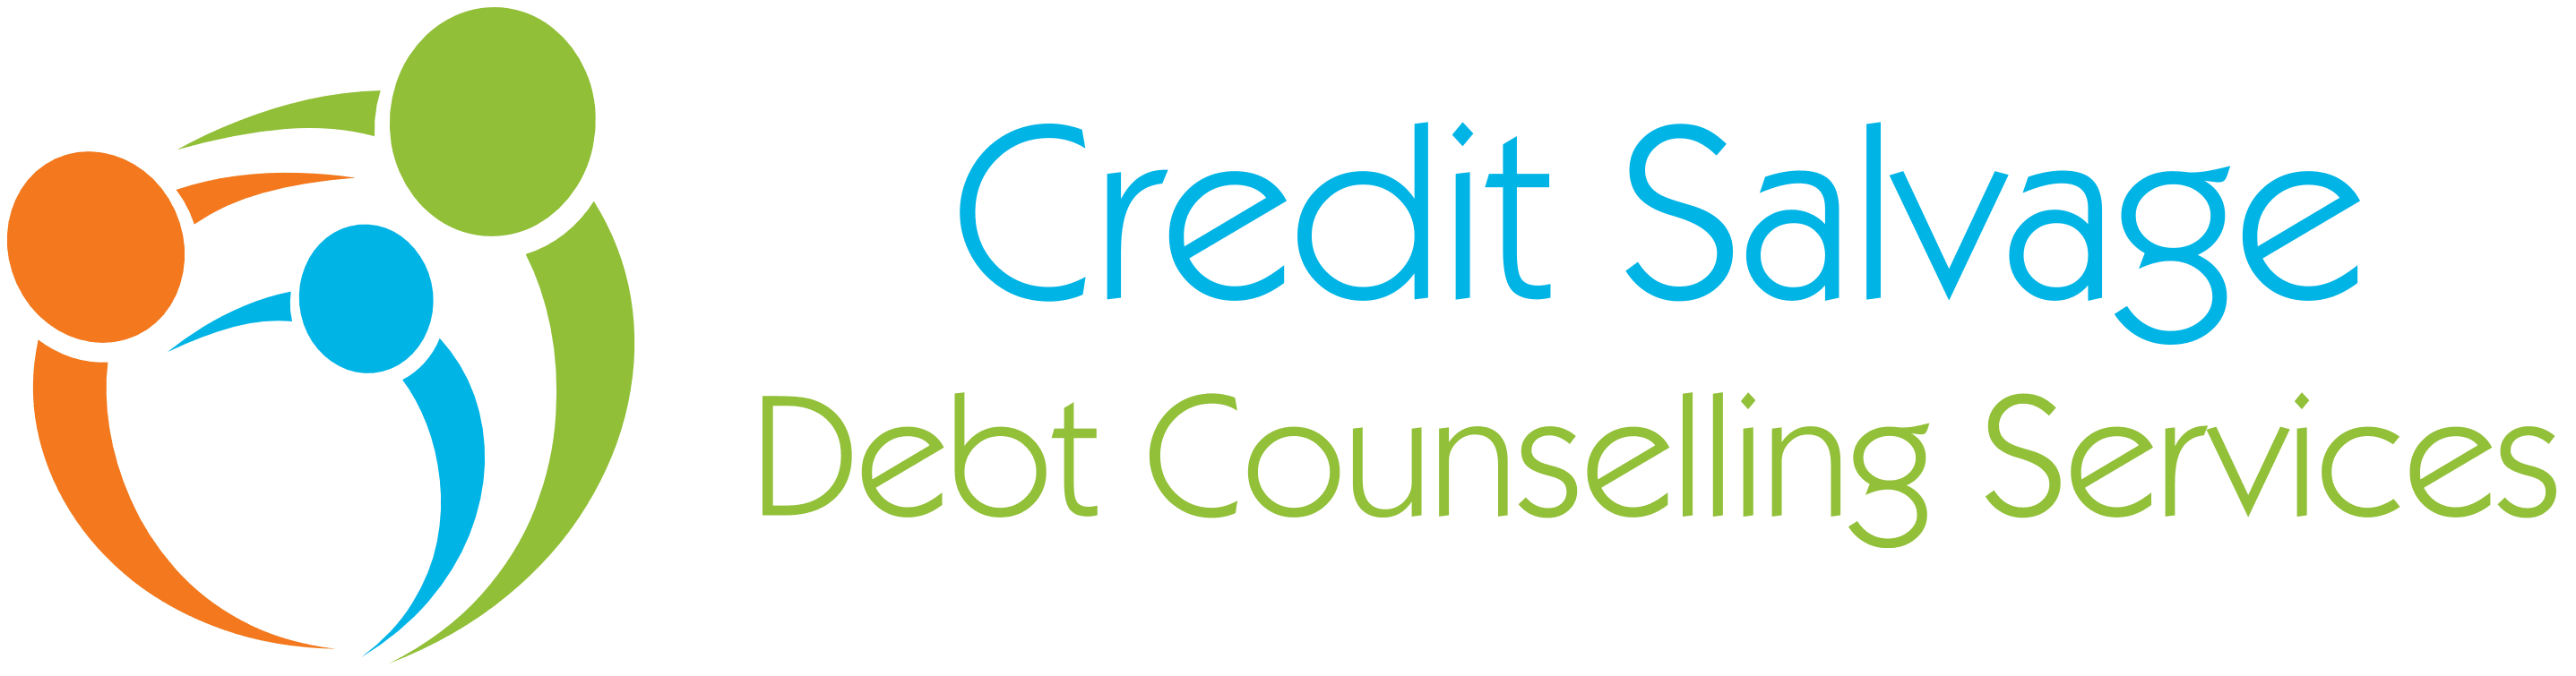 400dpiLogo_landscape FAQ Section Credit Clearance and Debt Counselling